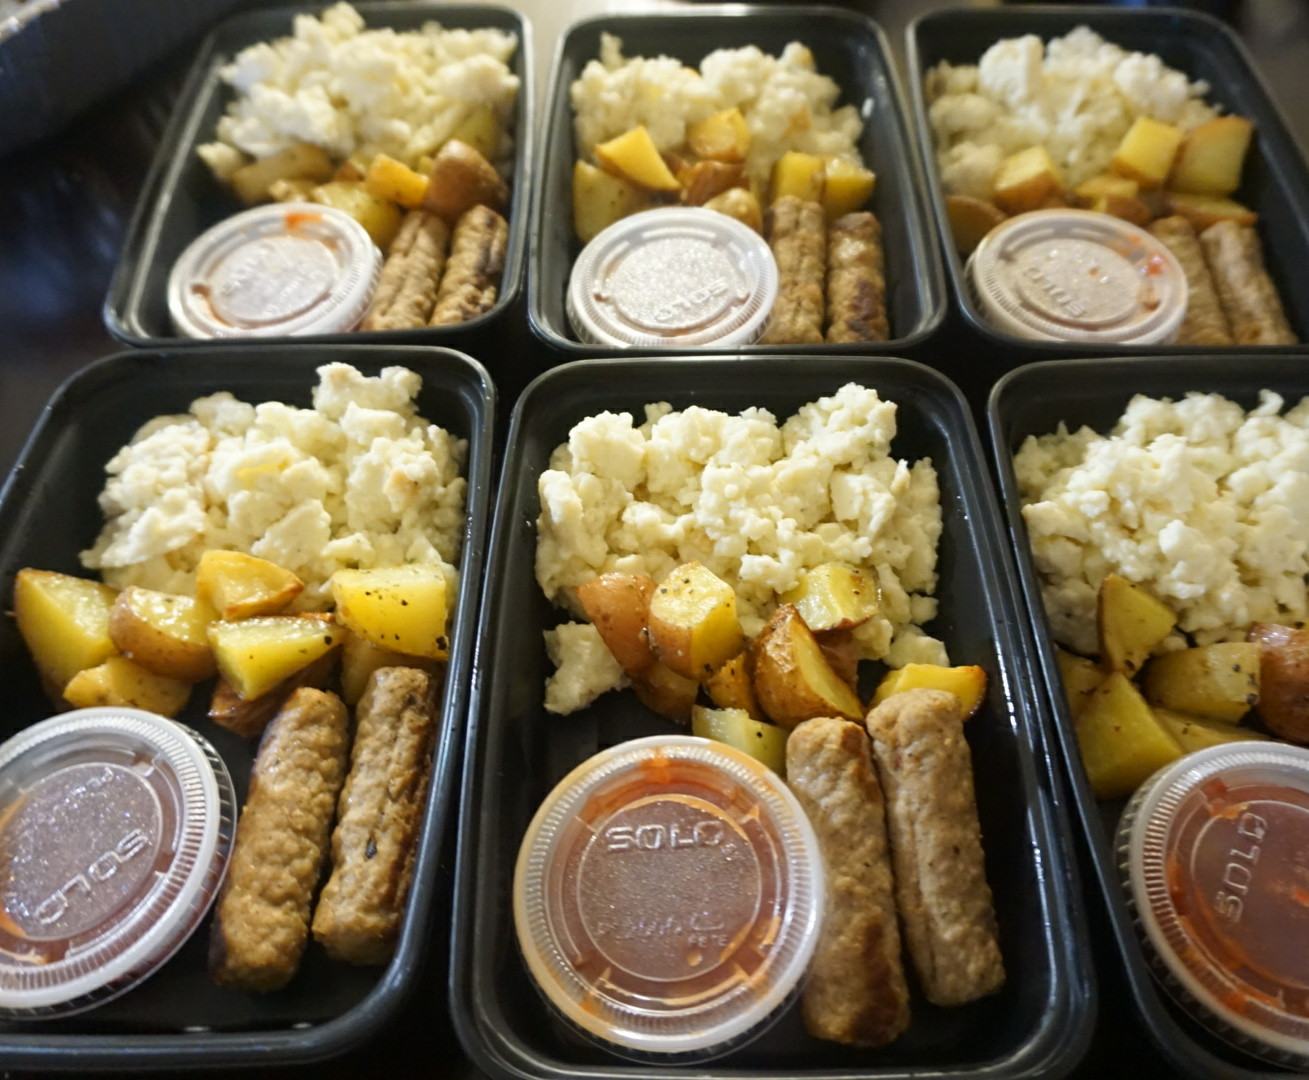 Hearty Breakfast  Egg whites, turkey sausage links & roasted potatoes with red salsa on the side.